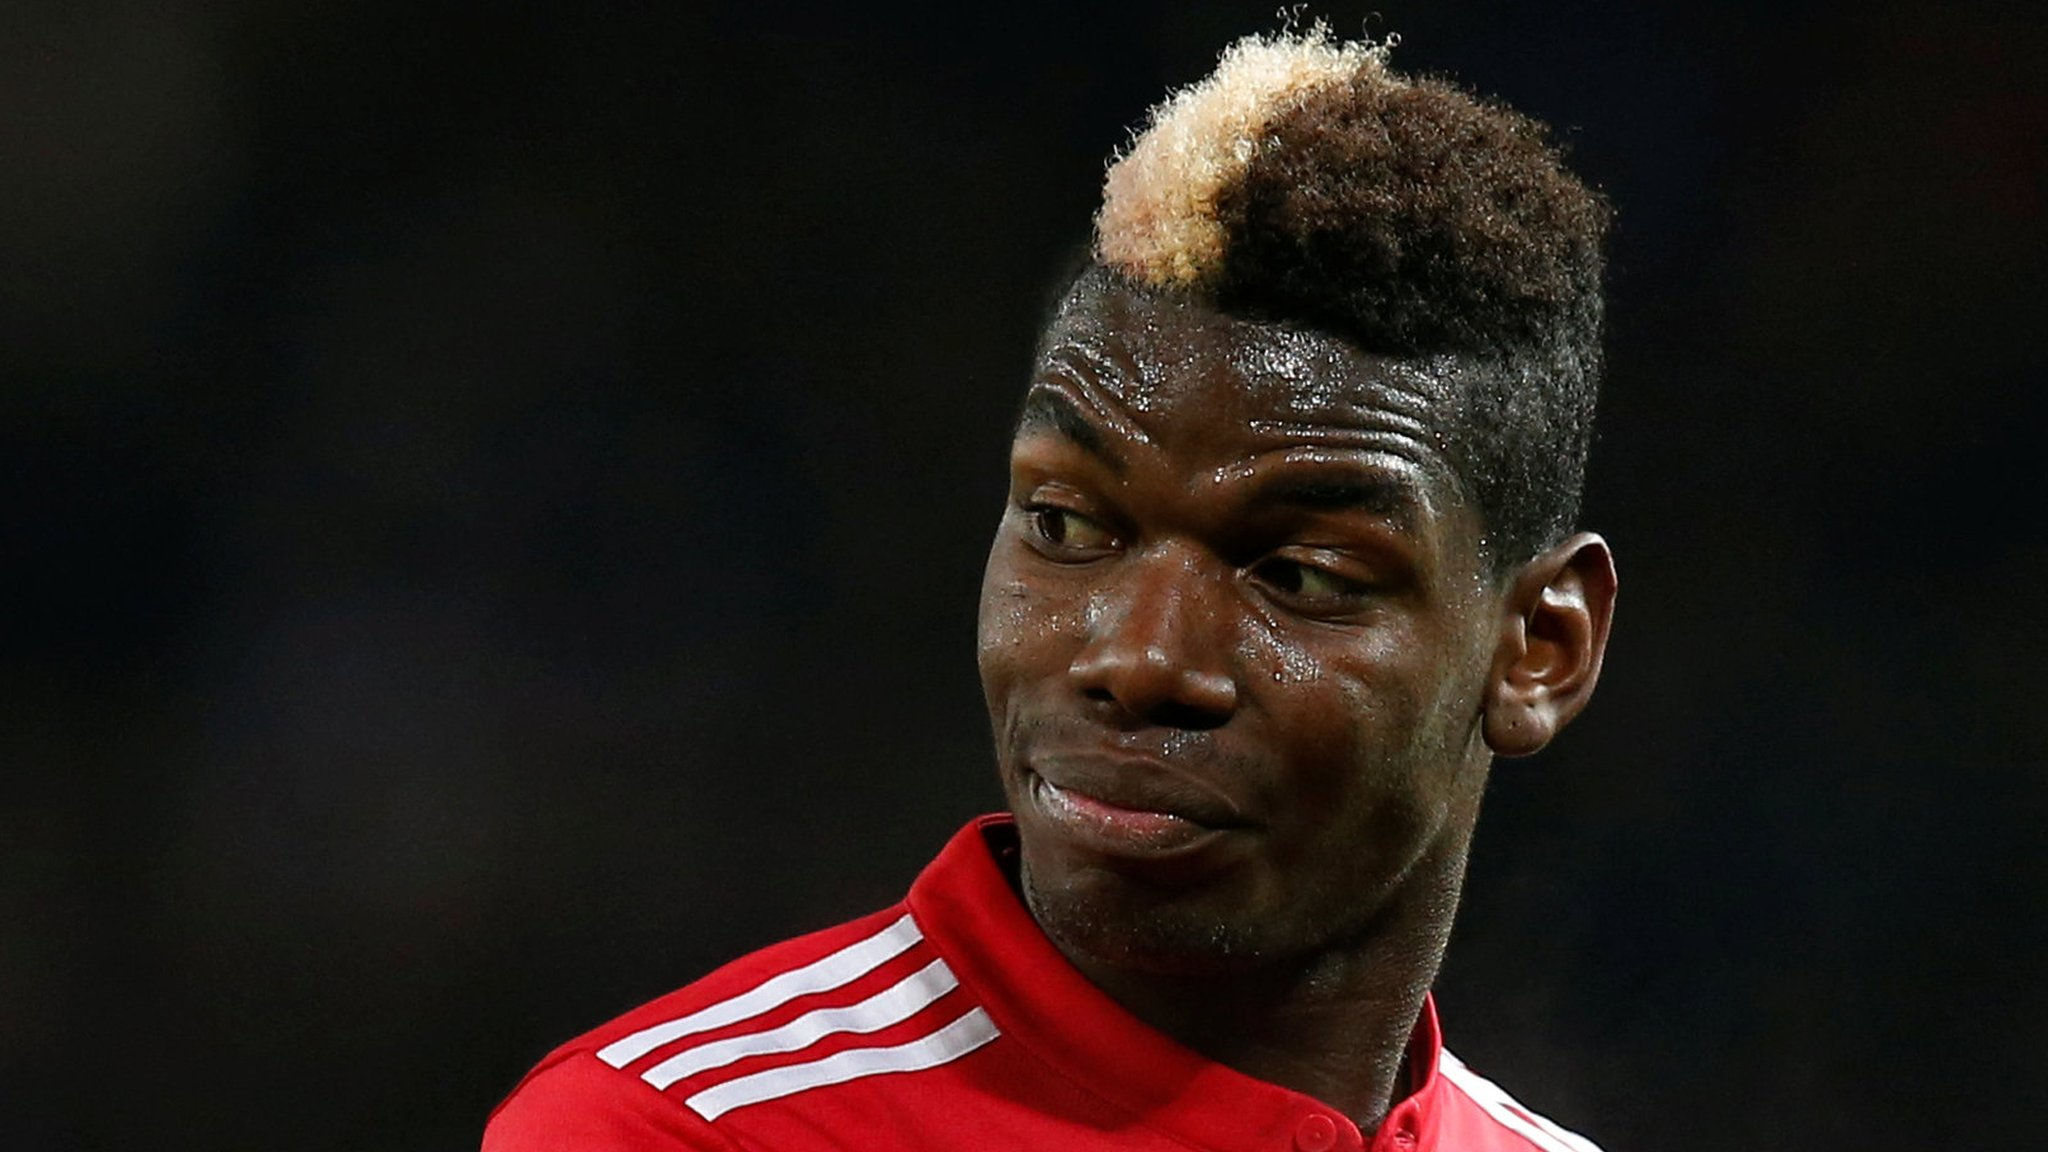 What is the problem with Man Utd's £89m man Pogba?